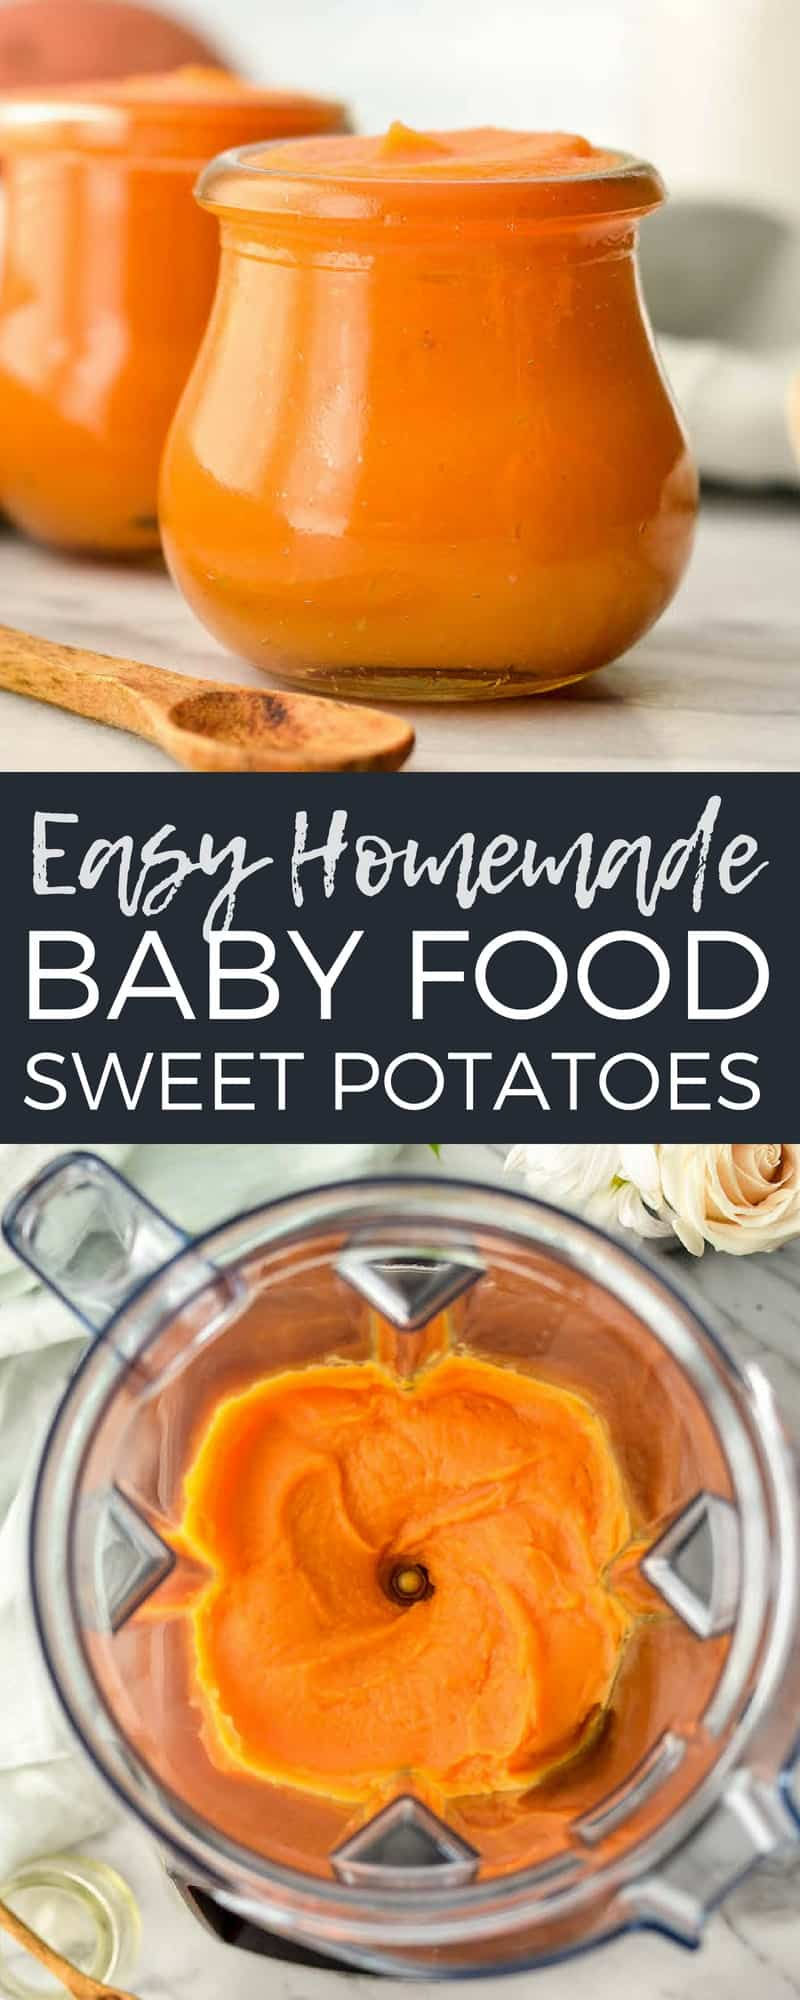 Easy Homemade Sweet Potato Baby Food! This recipe has only two ingredients, sweet potatoes and water! Making your own baby food is less expensive, tastier, and more nutritious than store-bought varieties!  #homemade #babyfood #sweetpotatoes #homemadebabyfood #vitamix #blender